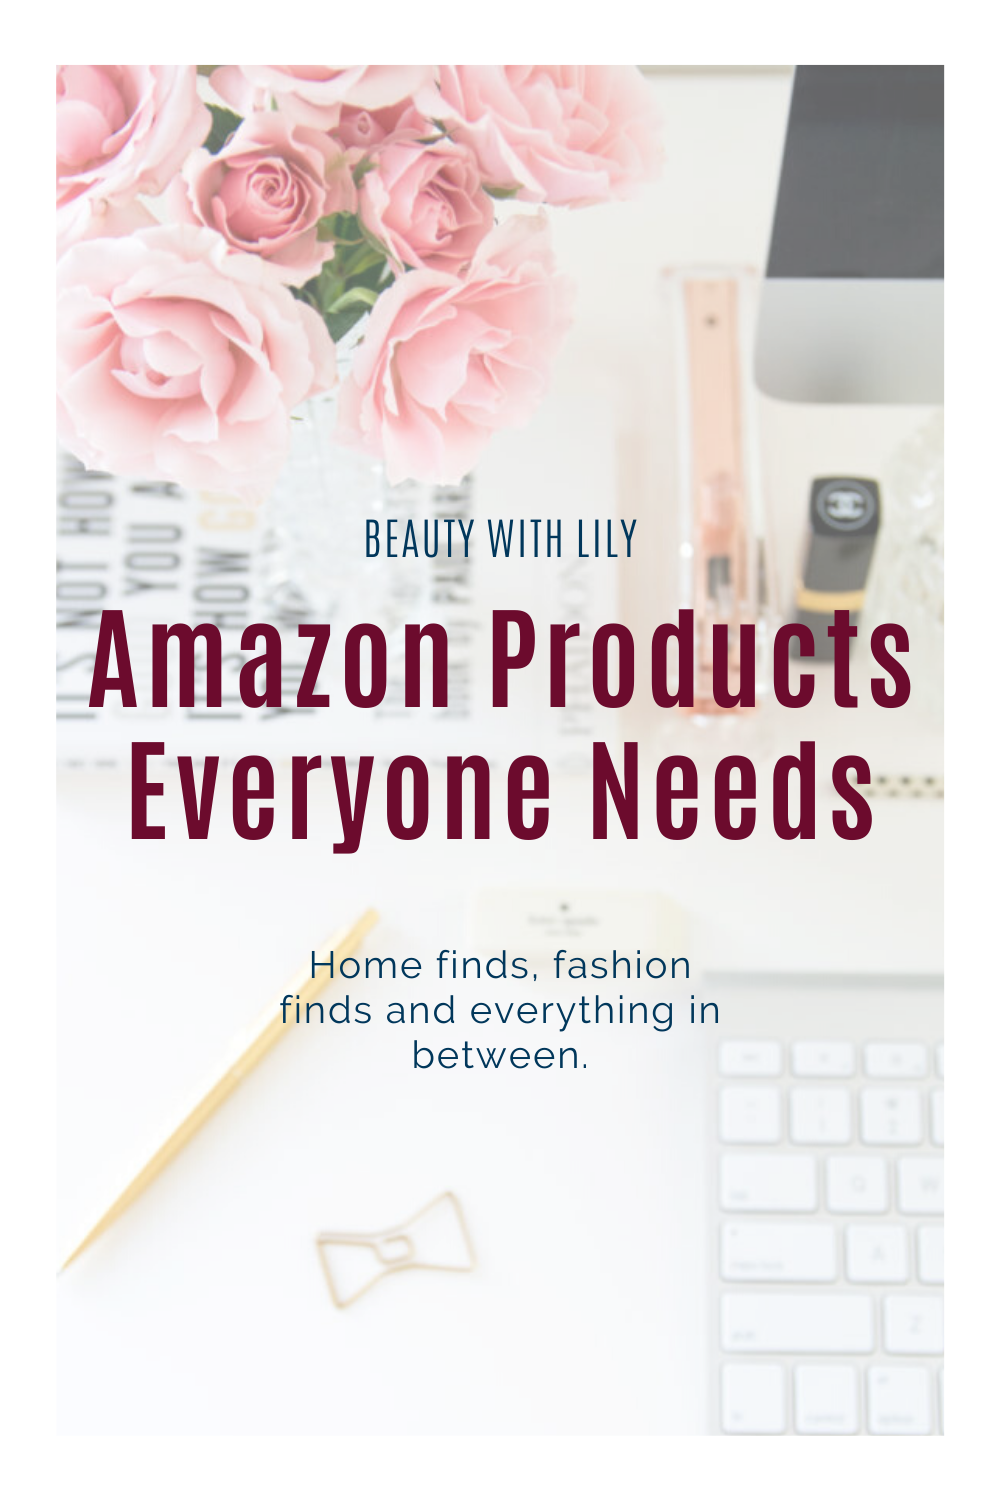 Current Amazon Favorites // Amazon Products Everyone Needs // Affordable Amazon Products // Online Shopping // What to Buy on Amazon // Home Decor // Organizational Kitchen Items // Pantry Organizational Items // Amazon Must Haves // Amazon Finds // Amazon Things To Buy   Beauty With Lily #amazonfinds #amazonfavorites #amazonmusthaves